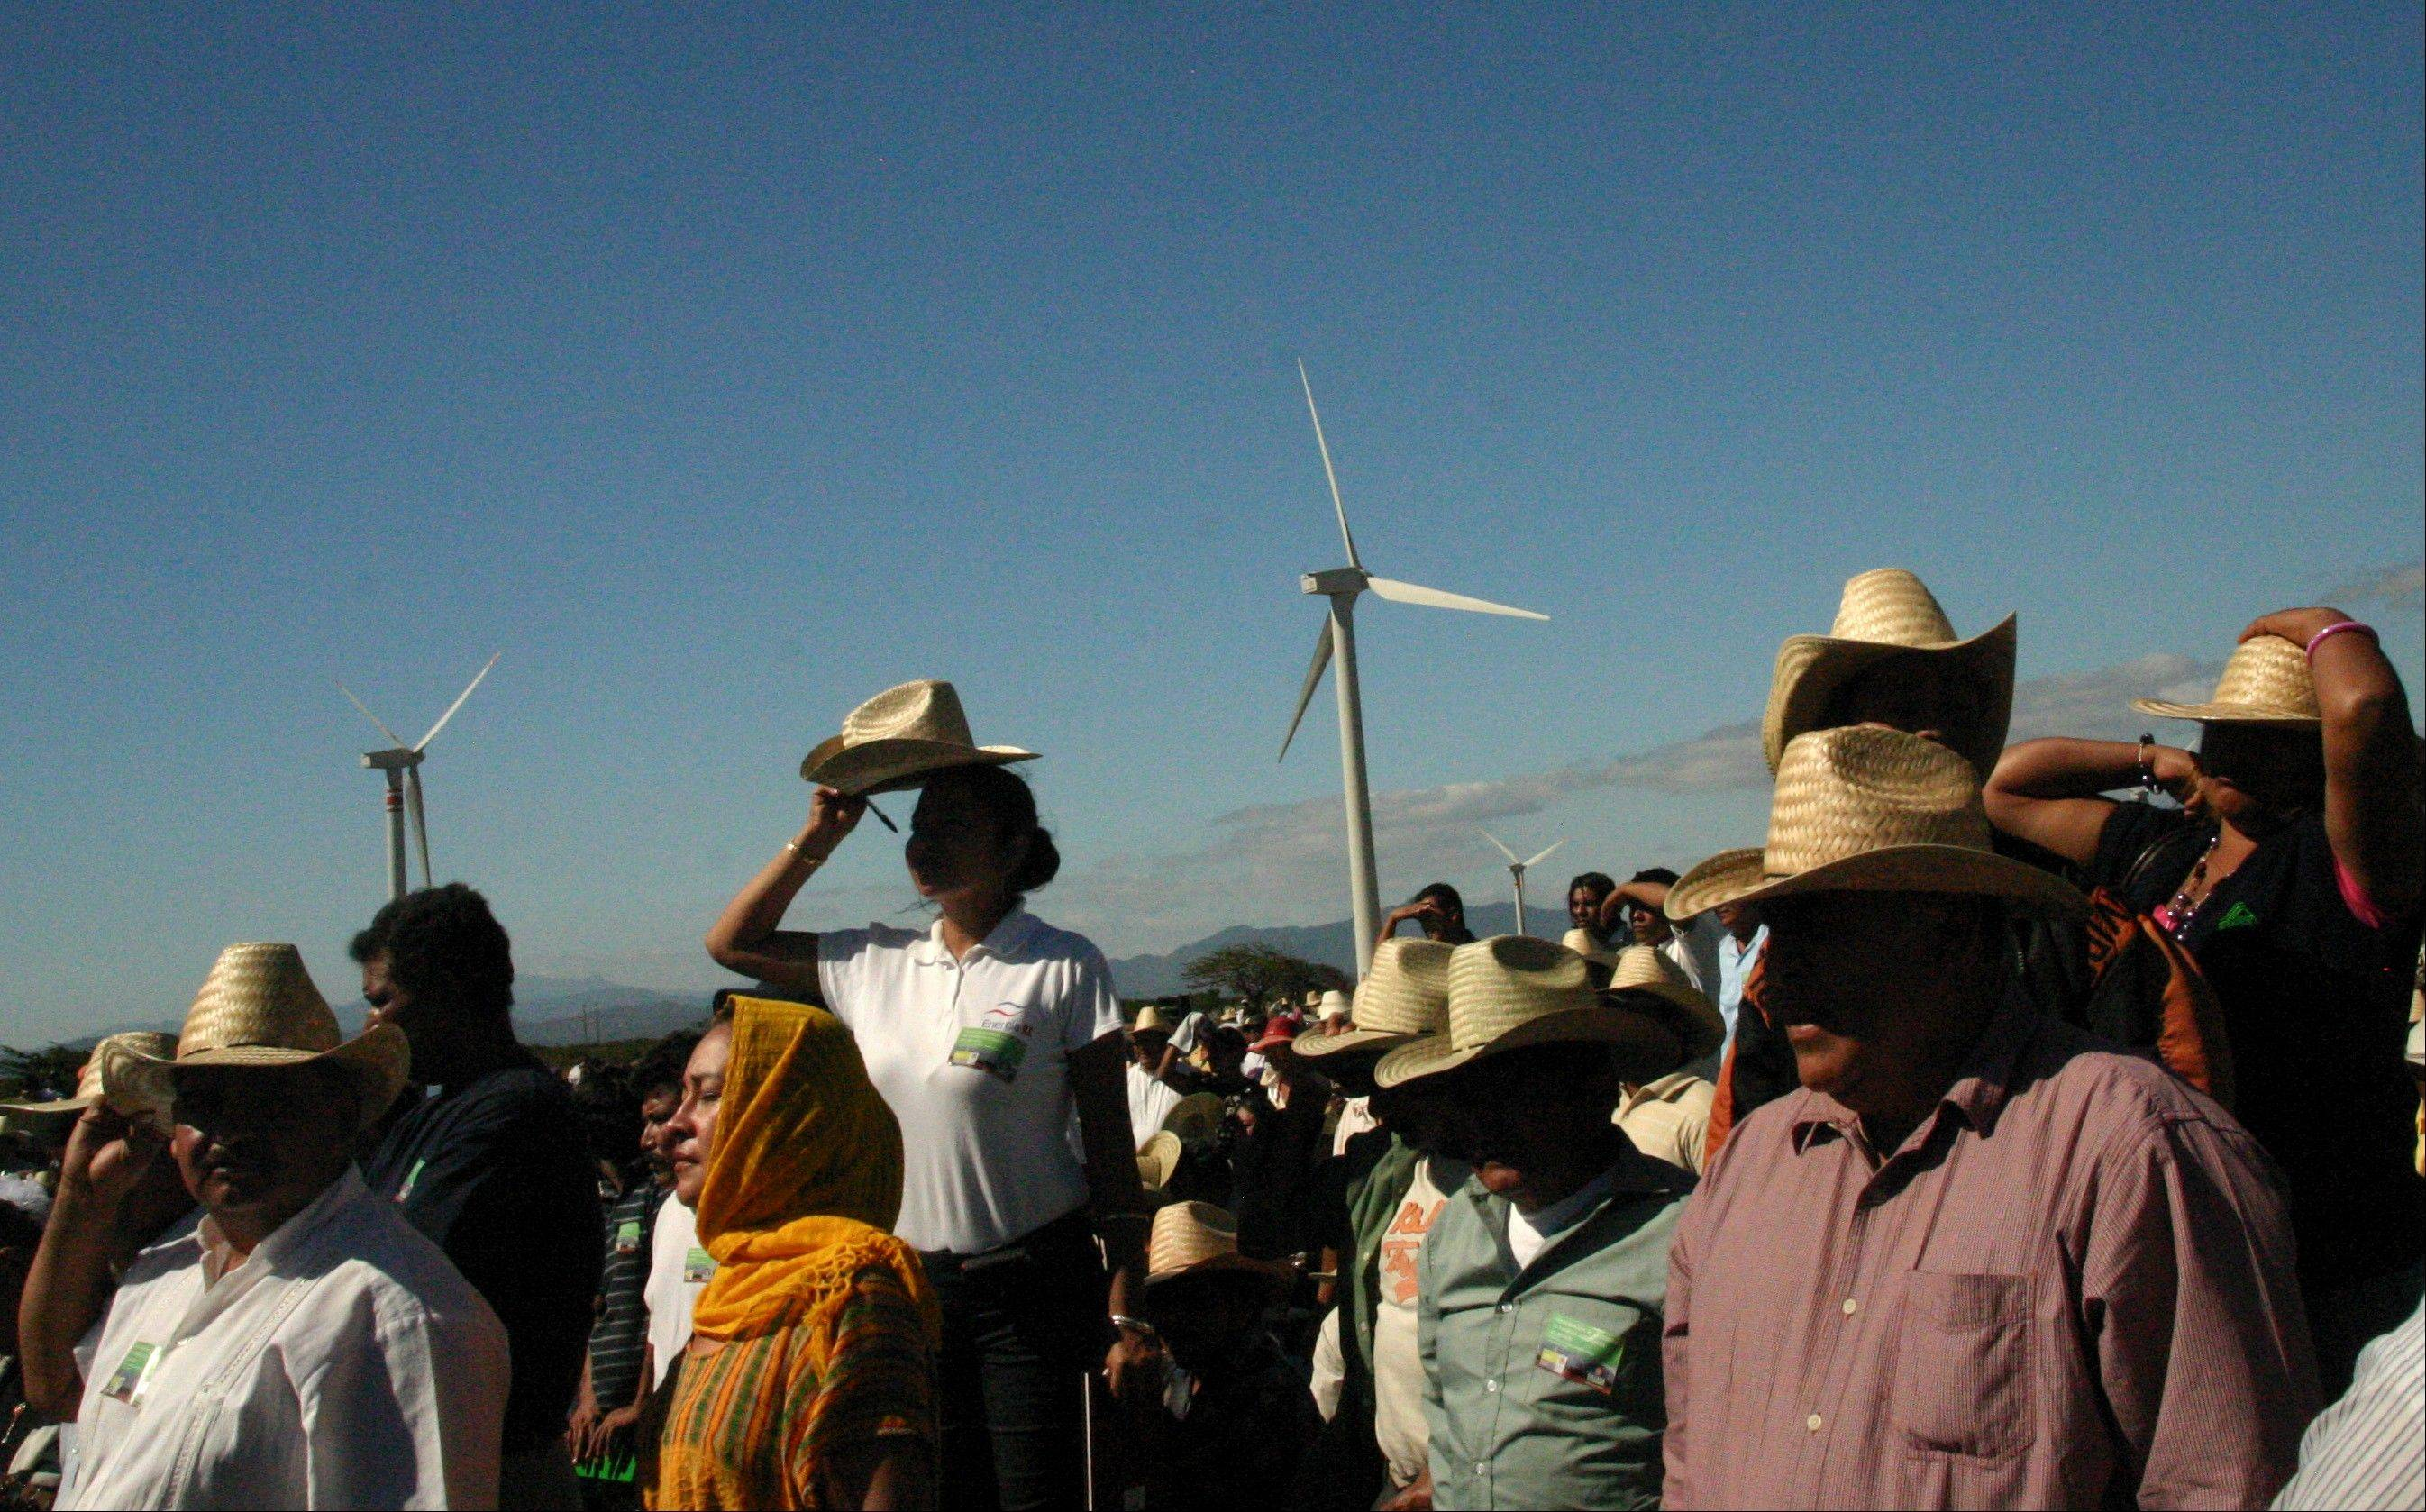 In this January 2009 photo, people watch during the inauguration of a new $550 million wind farm project in La Ventosa, Mexico, located on the narrow isthmus between the Gulf of Mexico and the Pacific Ocean. Mexican President Felipe Calderon has made the inauguration of wind parks one of the main focuses of his administration�s ambitious pledge to cut Mexico�s carbon emissions by 30 percent by 2020, and once again Tuesday as he has done before, he stopped in the state of Oaxaca to inaugurate a new clutch of wind turbines.